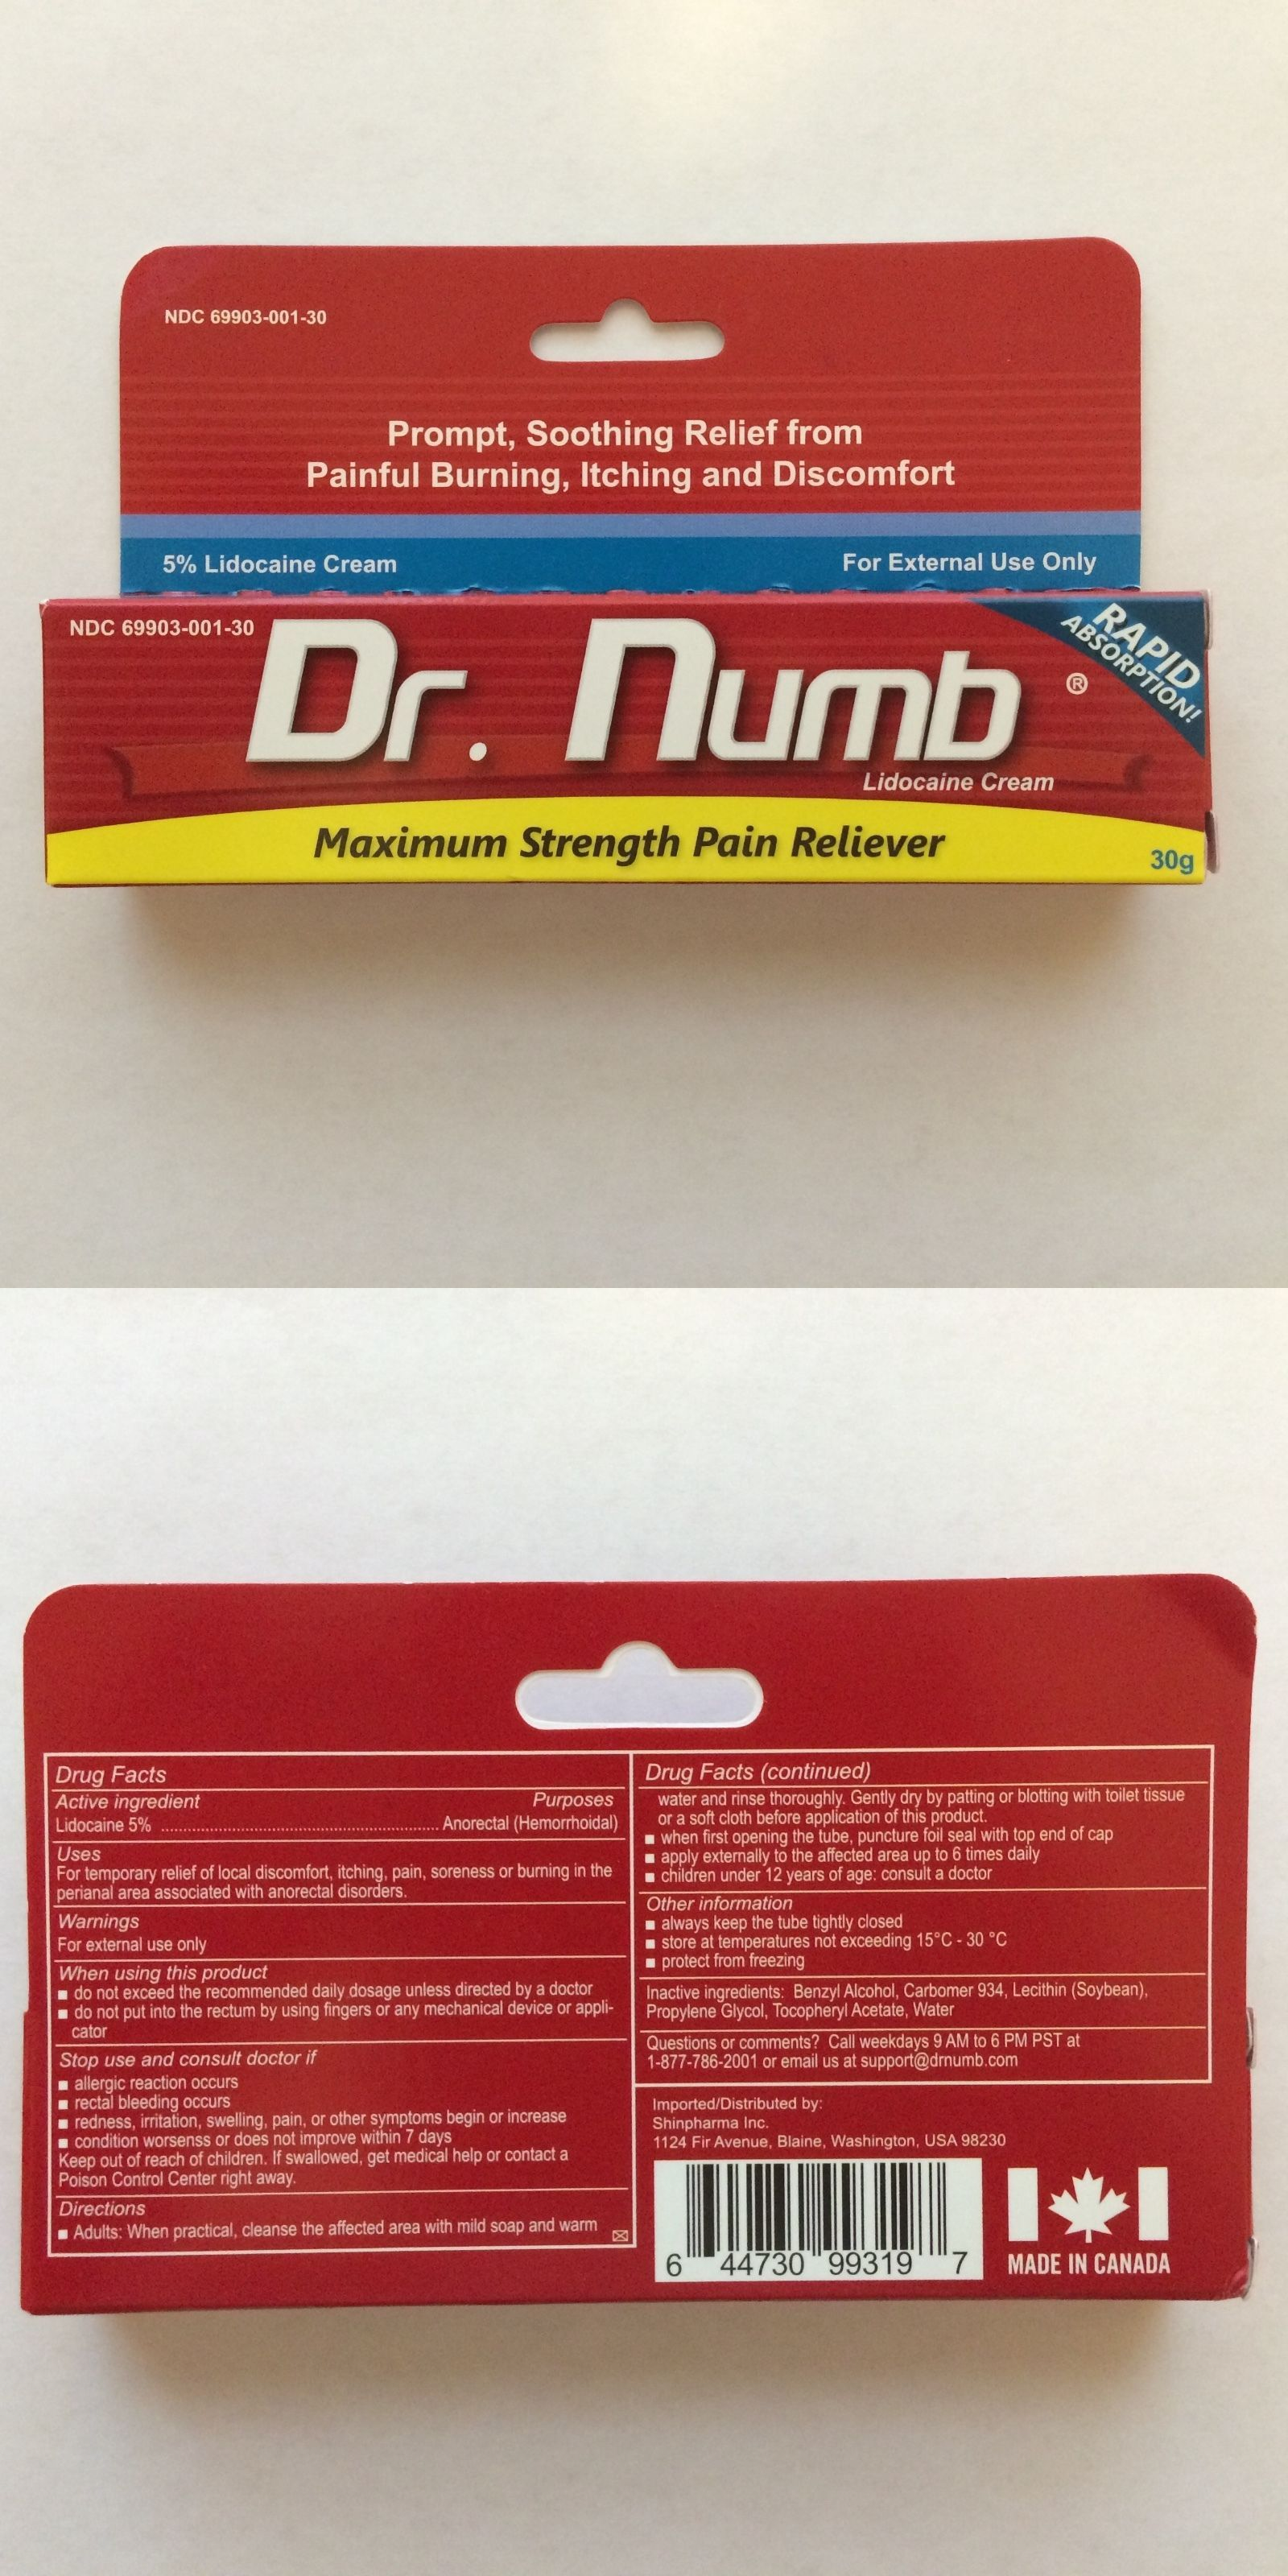 Dr Numb 5% Lidocaine Cream 30 gr Skin Numbing Tattoo/Removal Waxing ...